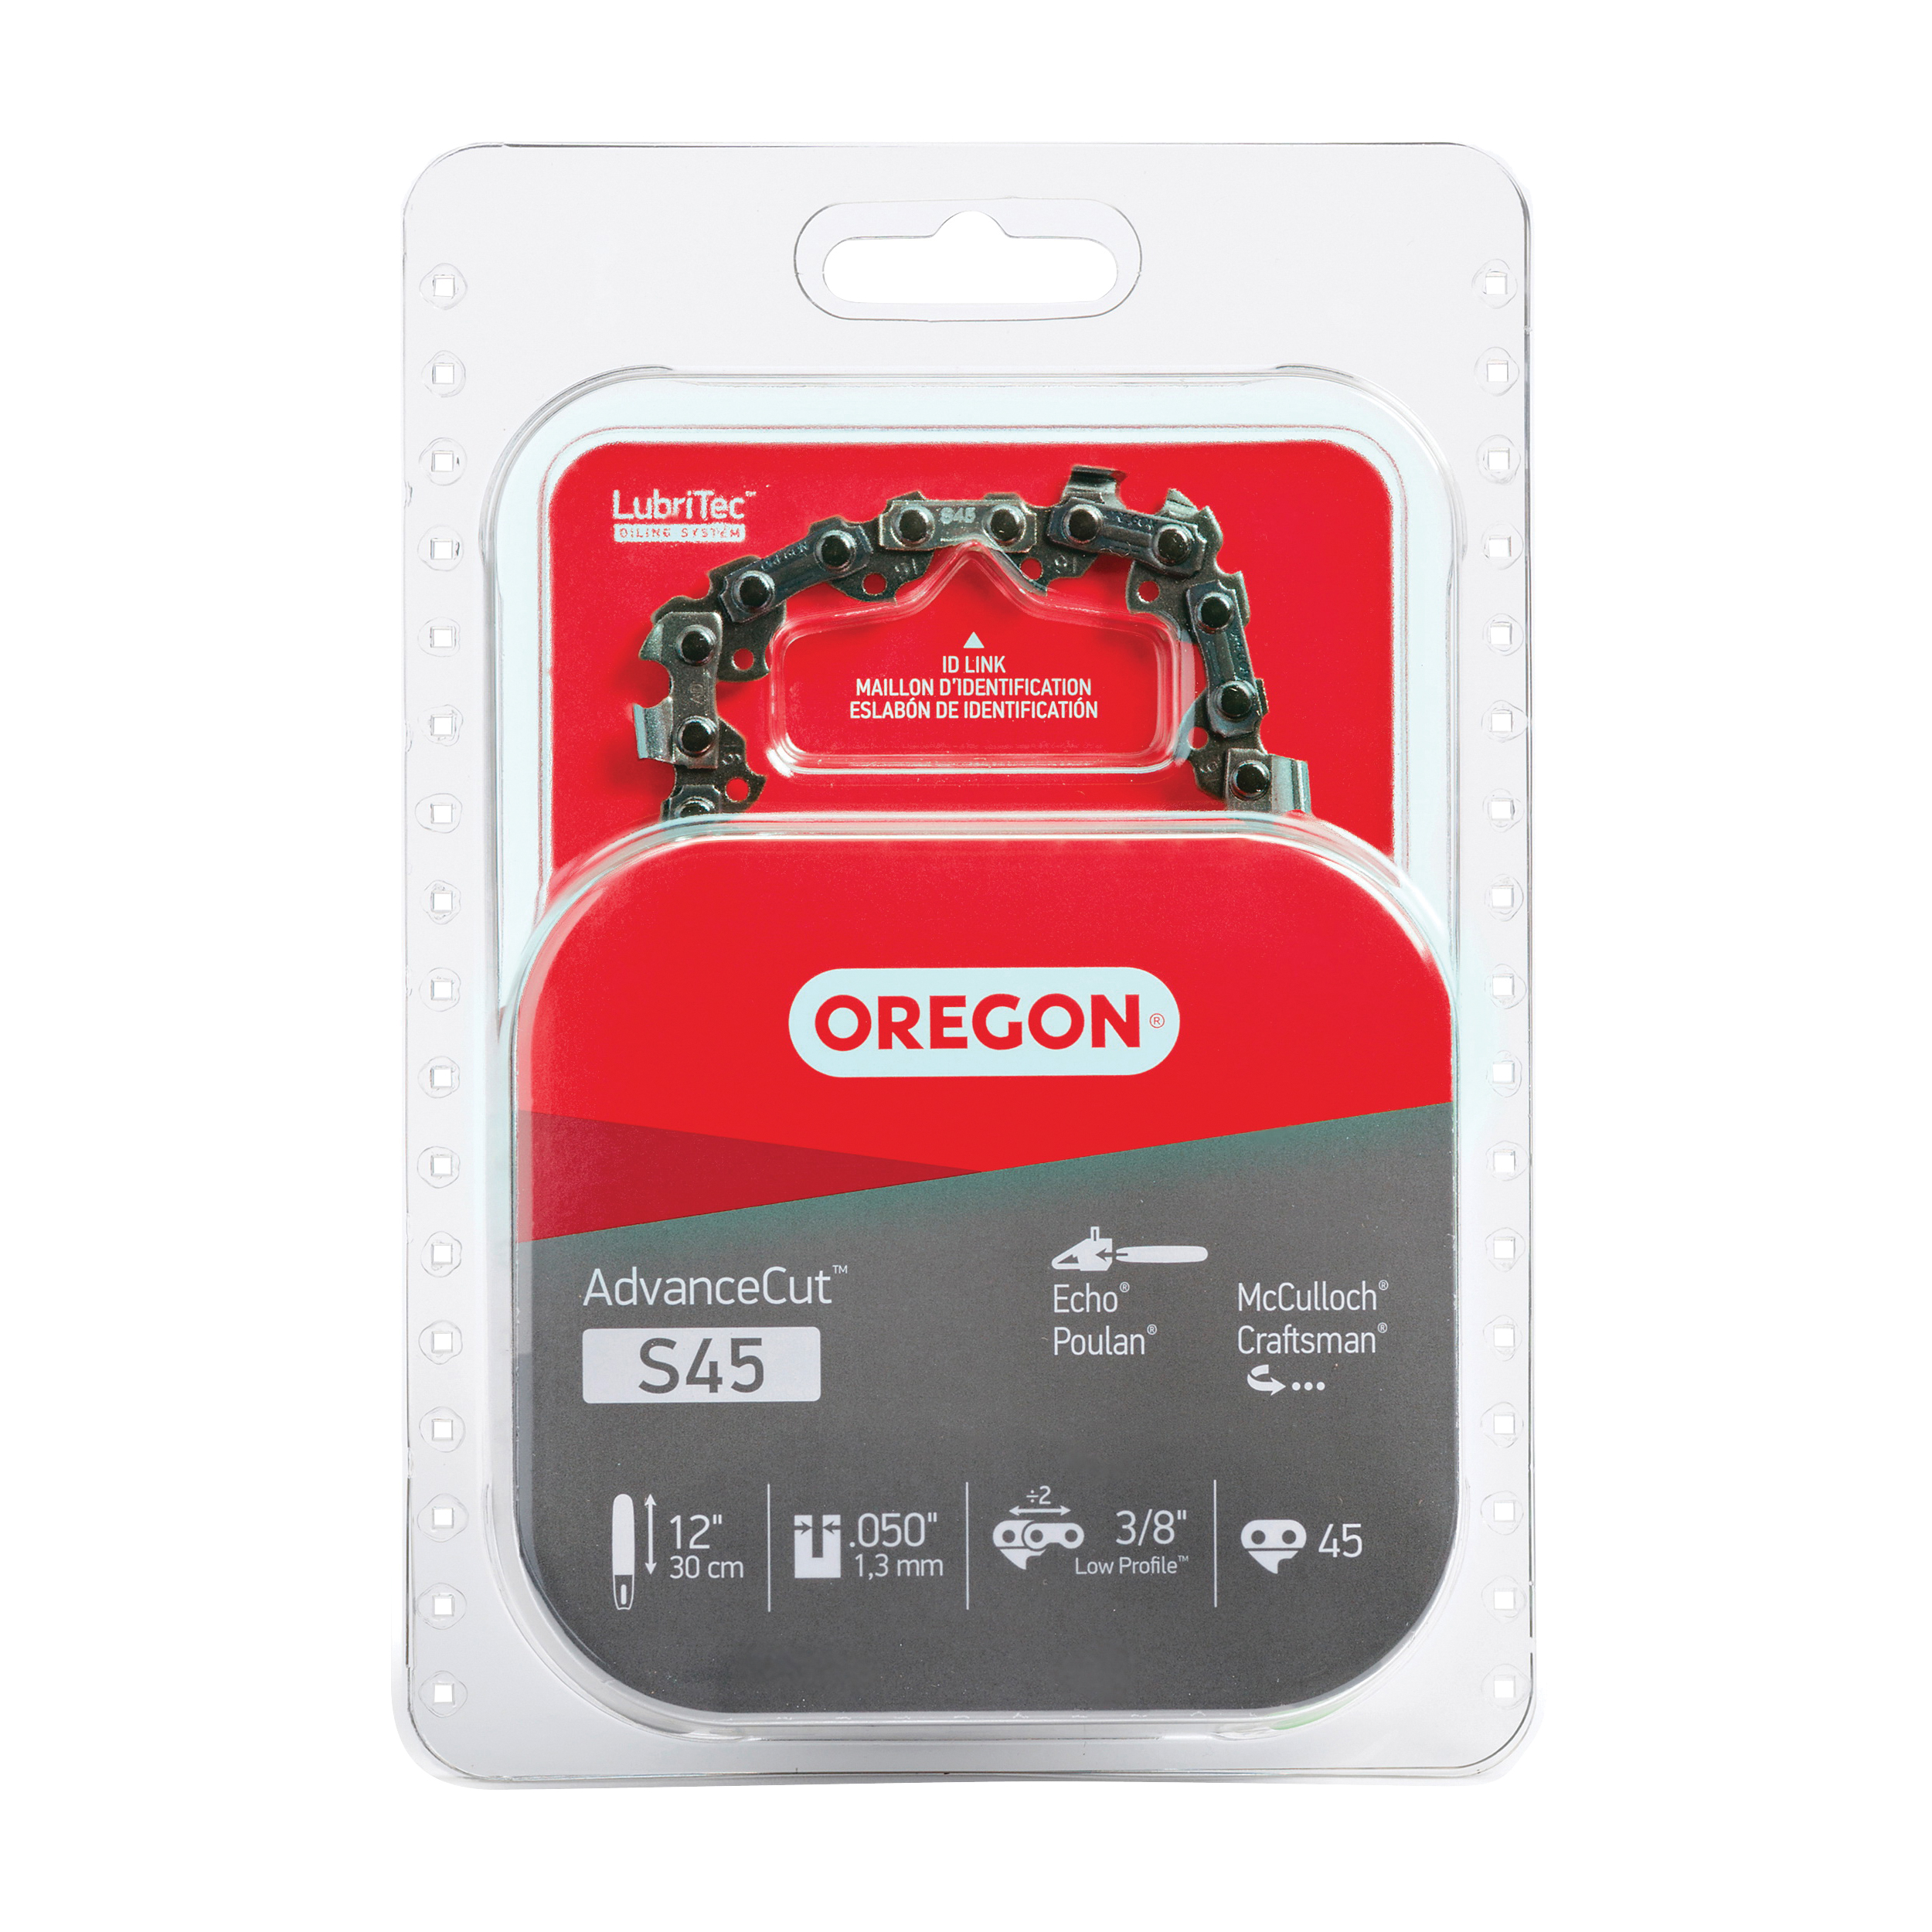 Picture of Oregon S45 Chainsaw Chain, 12 in L Bar, 0.05 Gauge, 3/8 in TPI/Pitch, 45 -Link